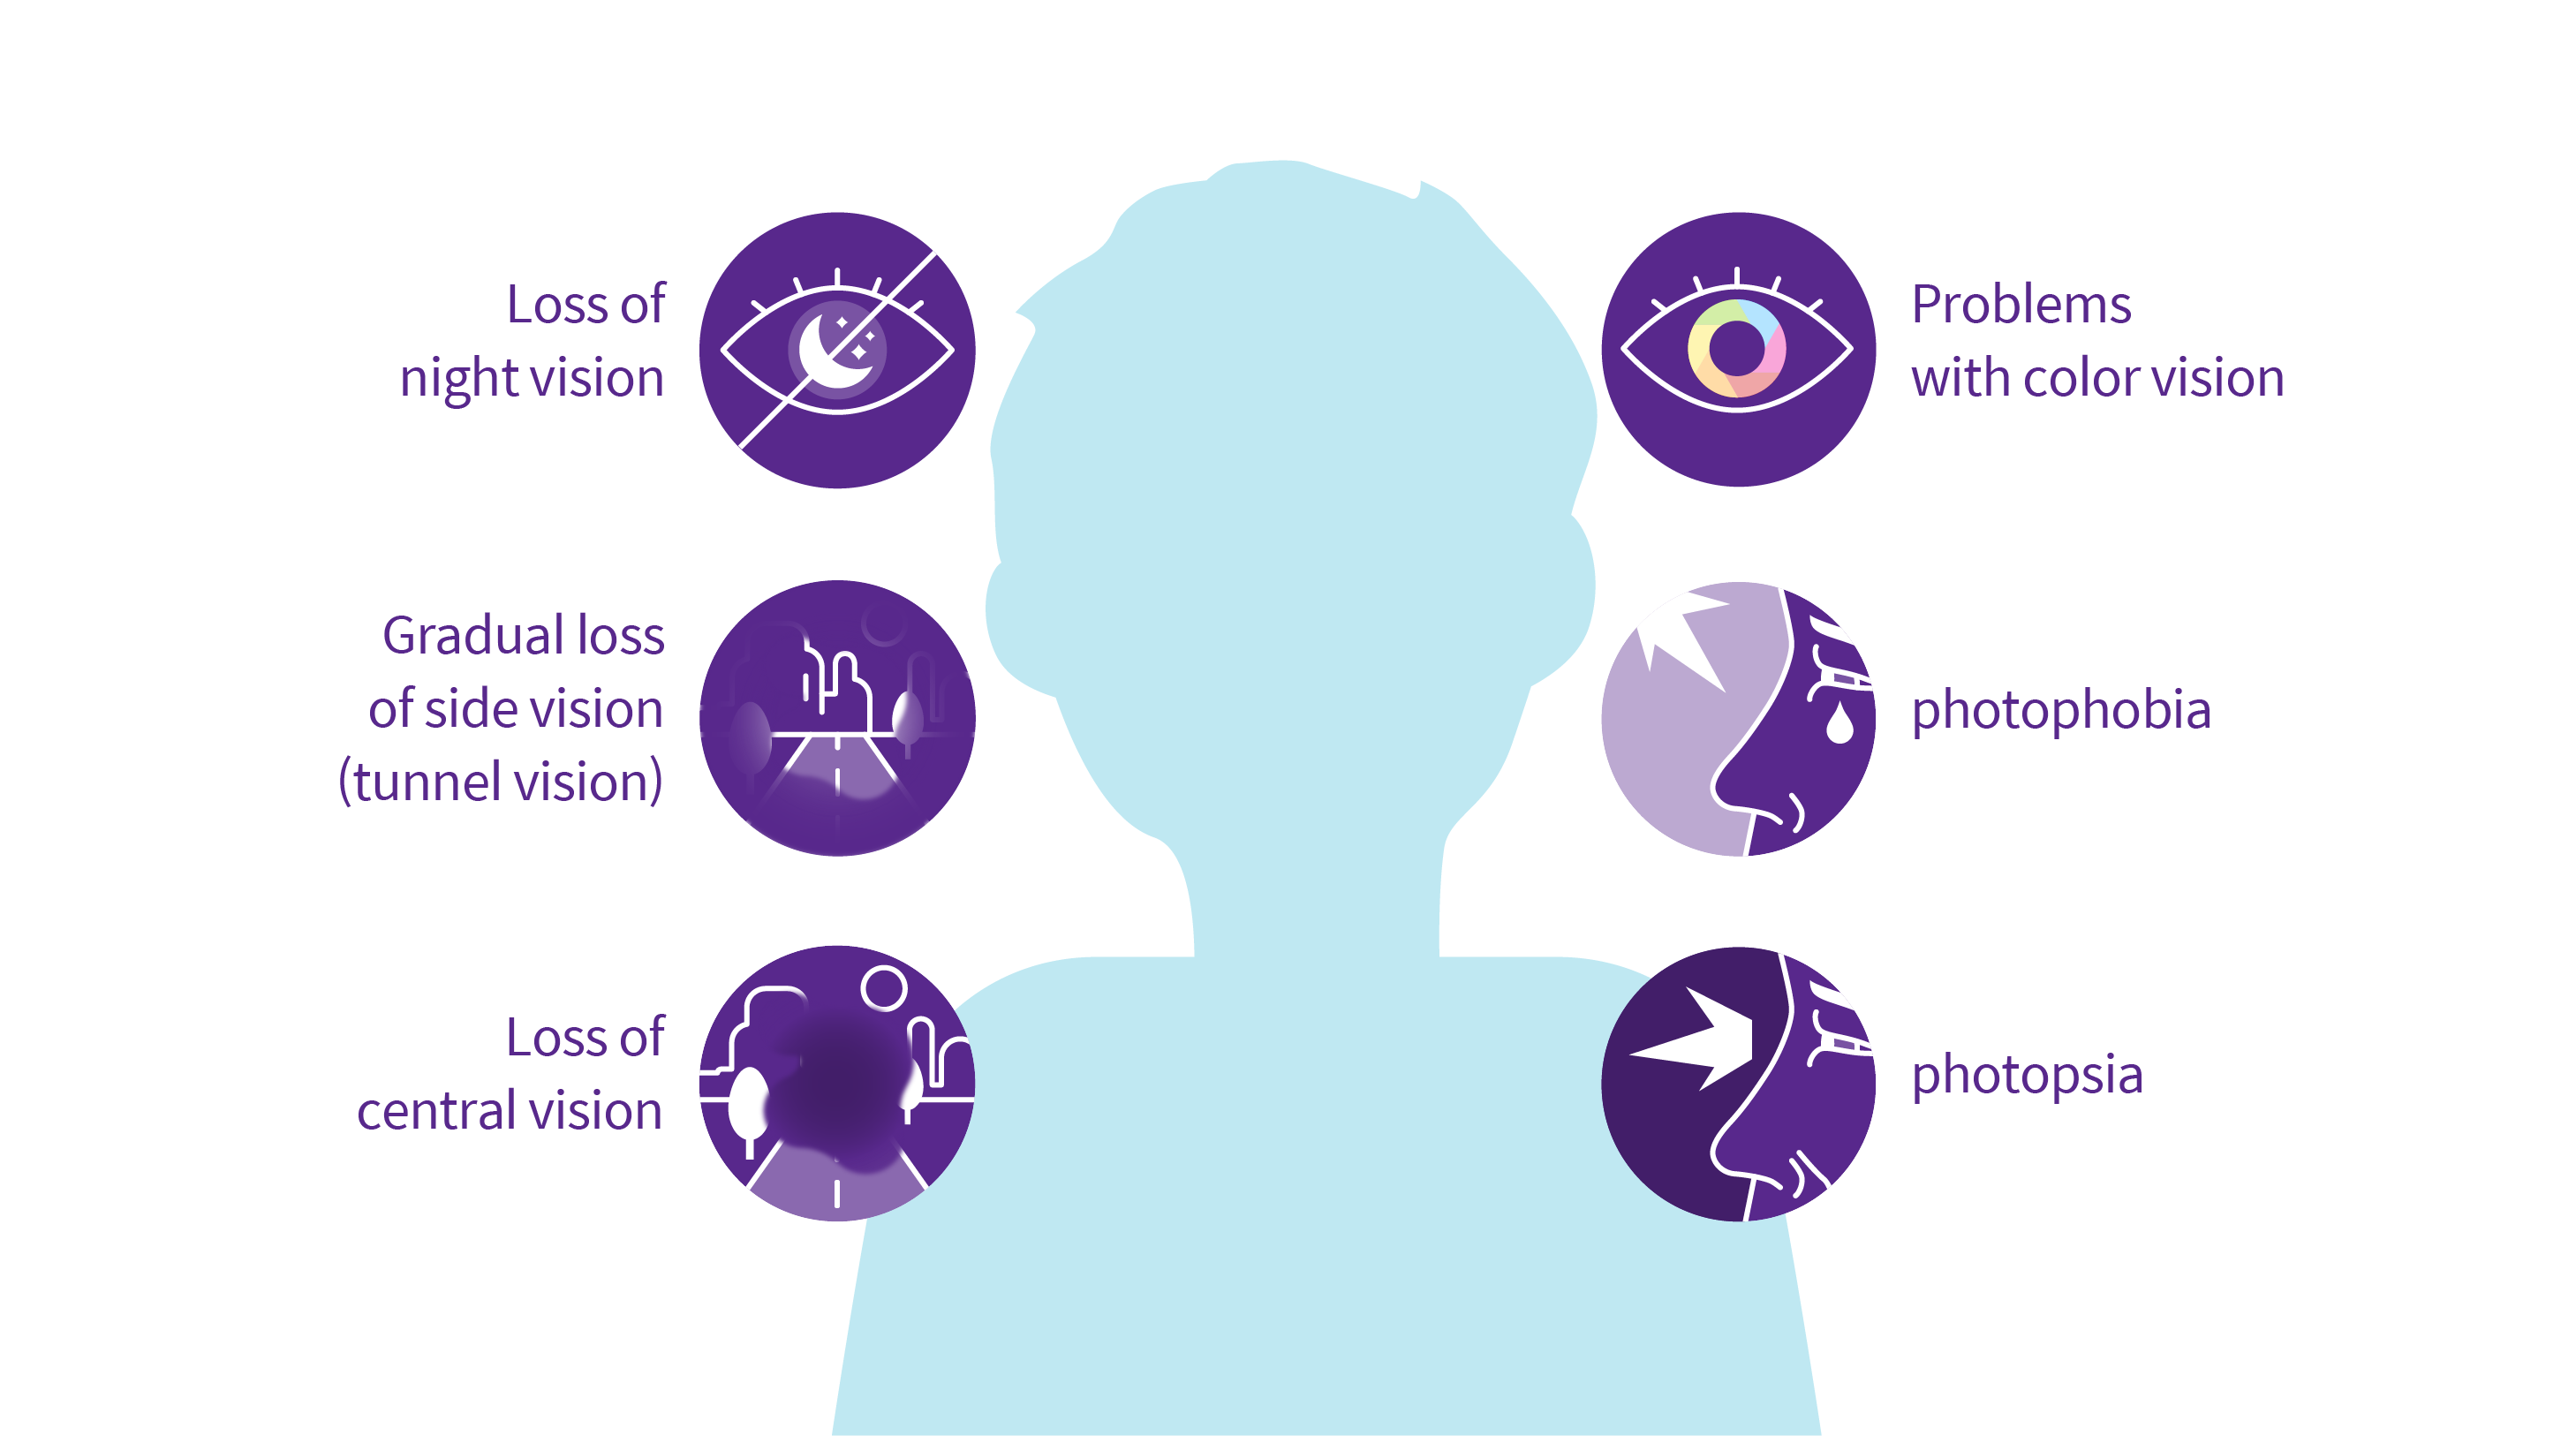 Six symptoms of Retinitis pigmentosa: Loss of night vision, Gradual loss of side vision(tunnel vision), Loss of central vision, Problems with color vision, photophobia, photopsia